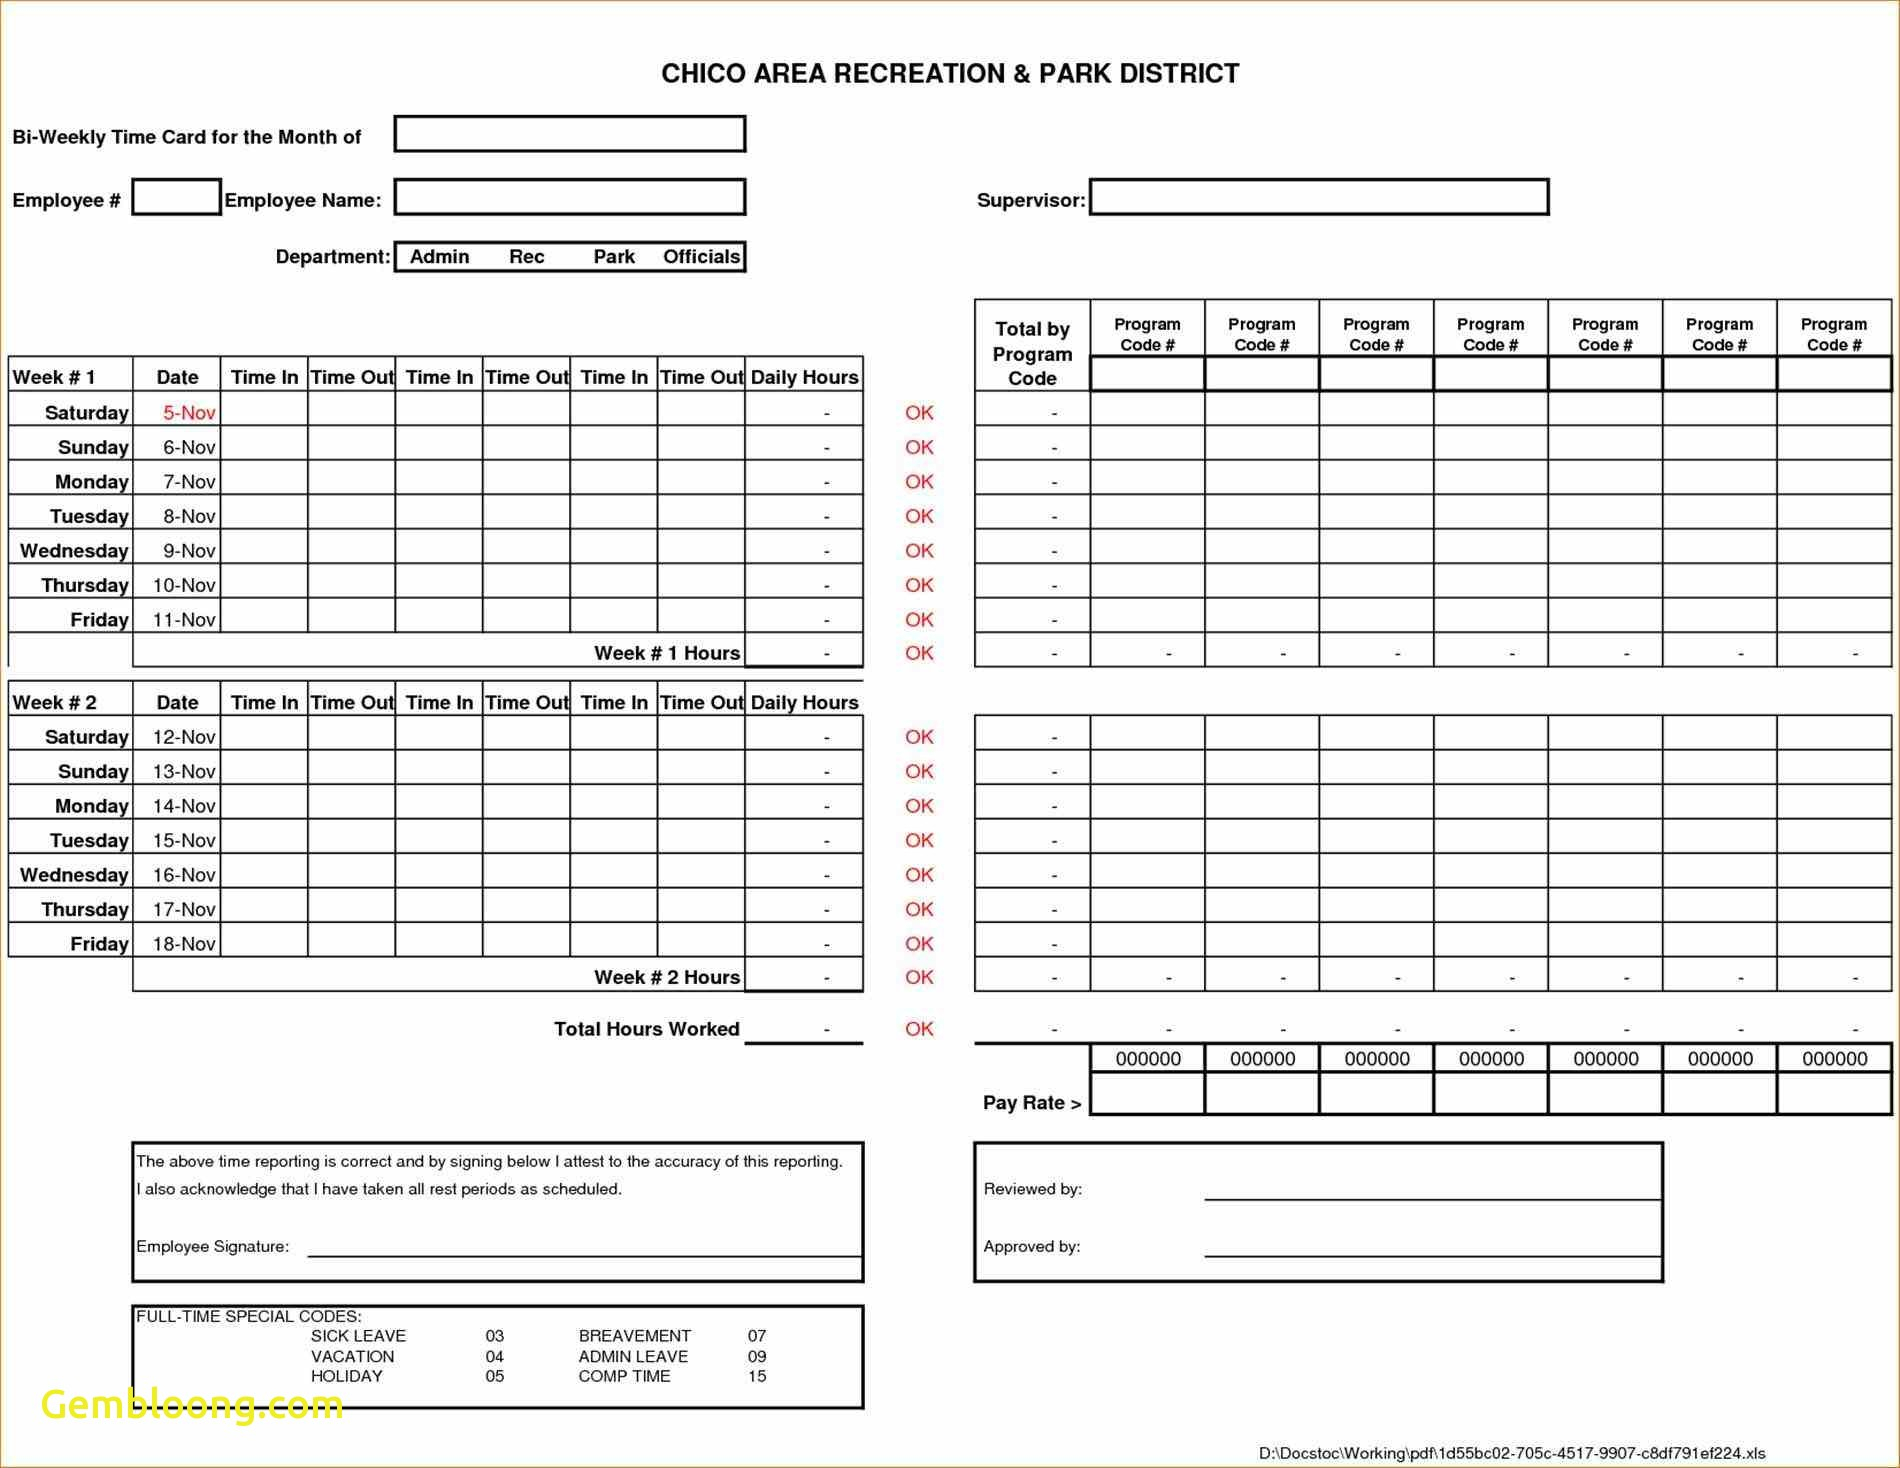 Timesheet Spreadsheet Template Excel Throughout Weekly Timesheet Spreadsheet Template For Multiple Employees Daily